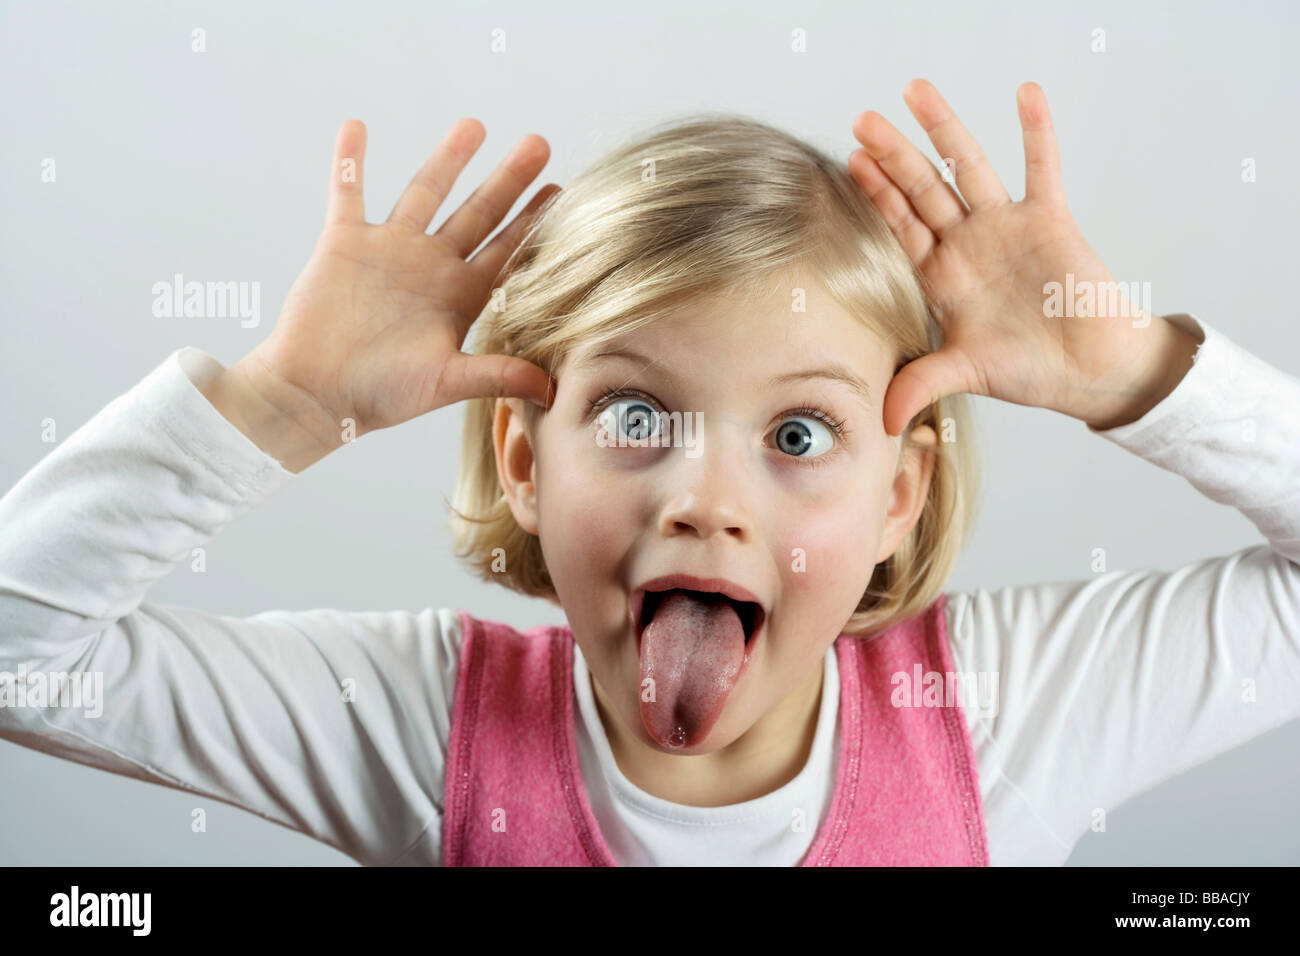 A little girl making a funny face - Stock Image